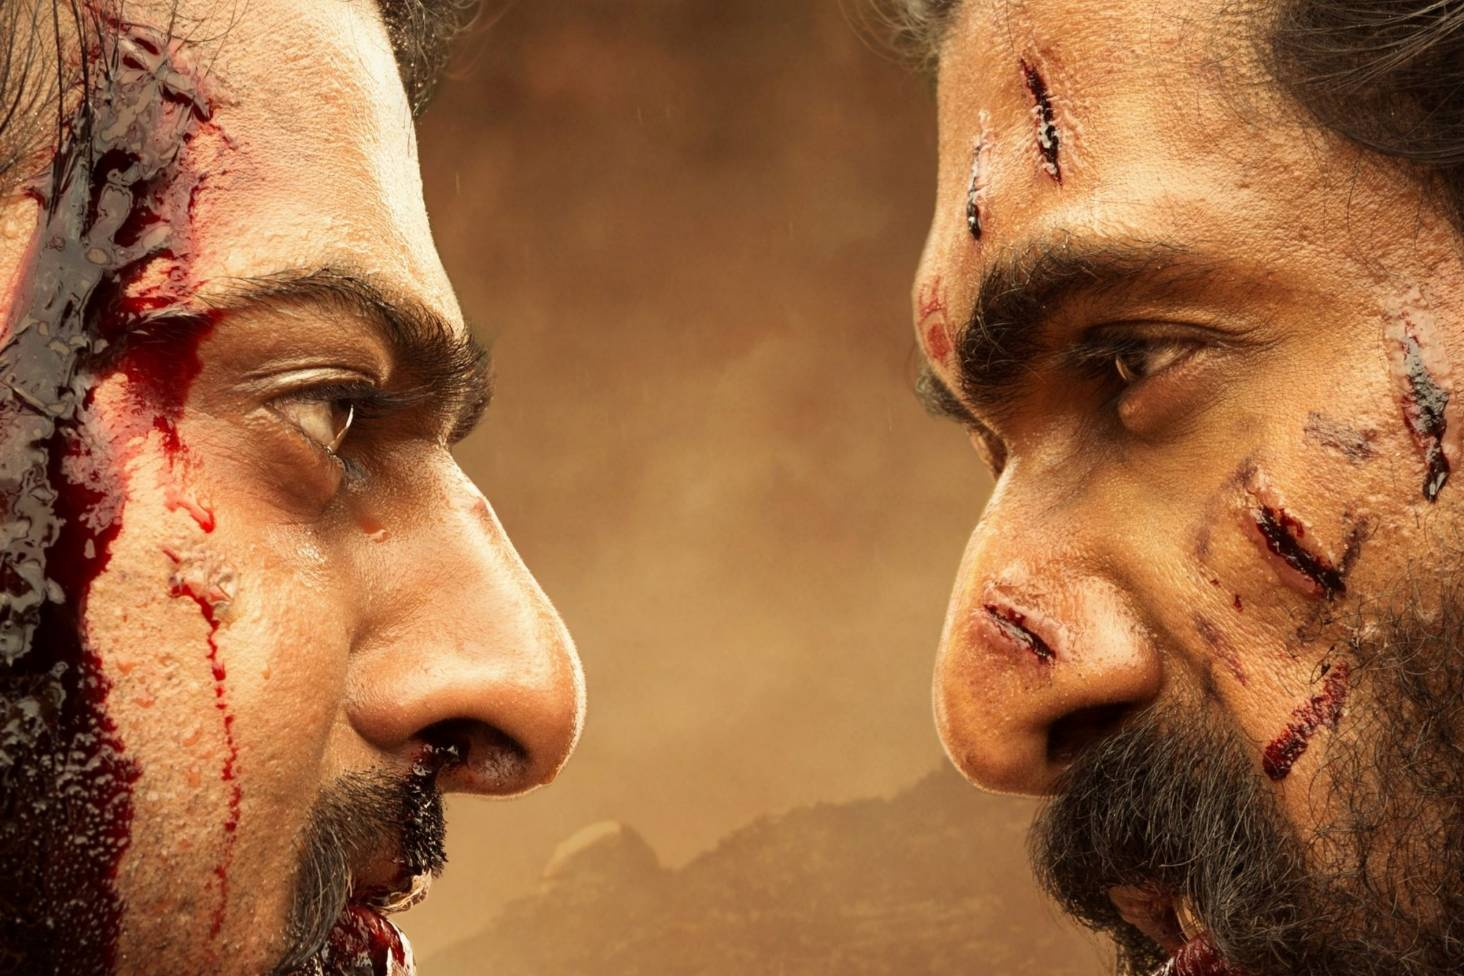 baahubali 2 the conclusion online english subtitles